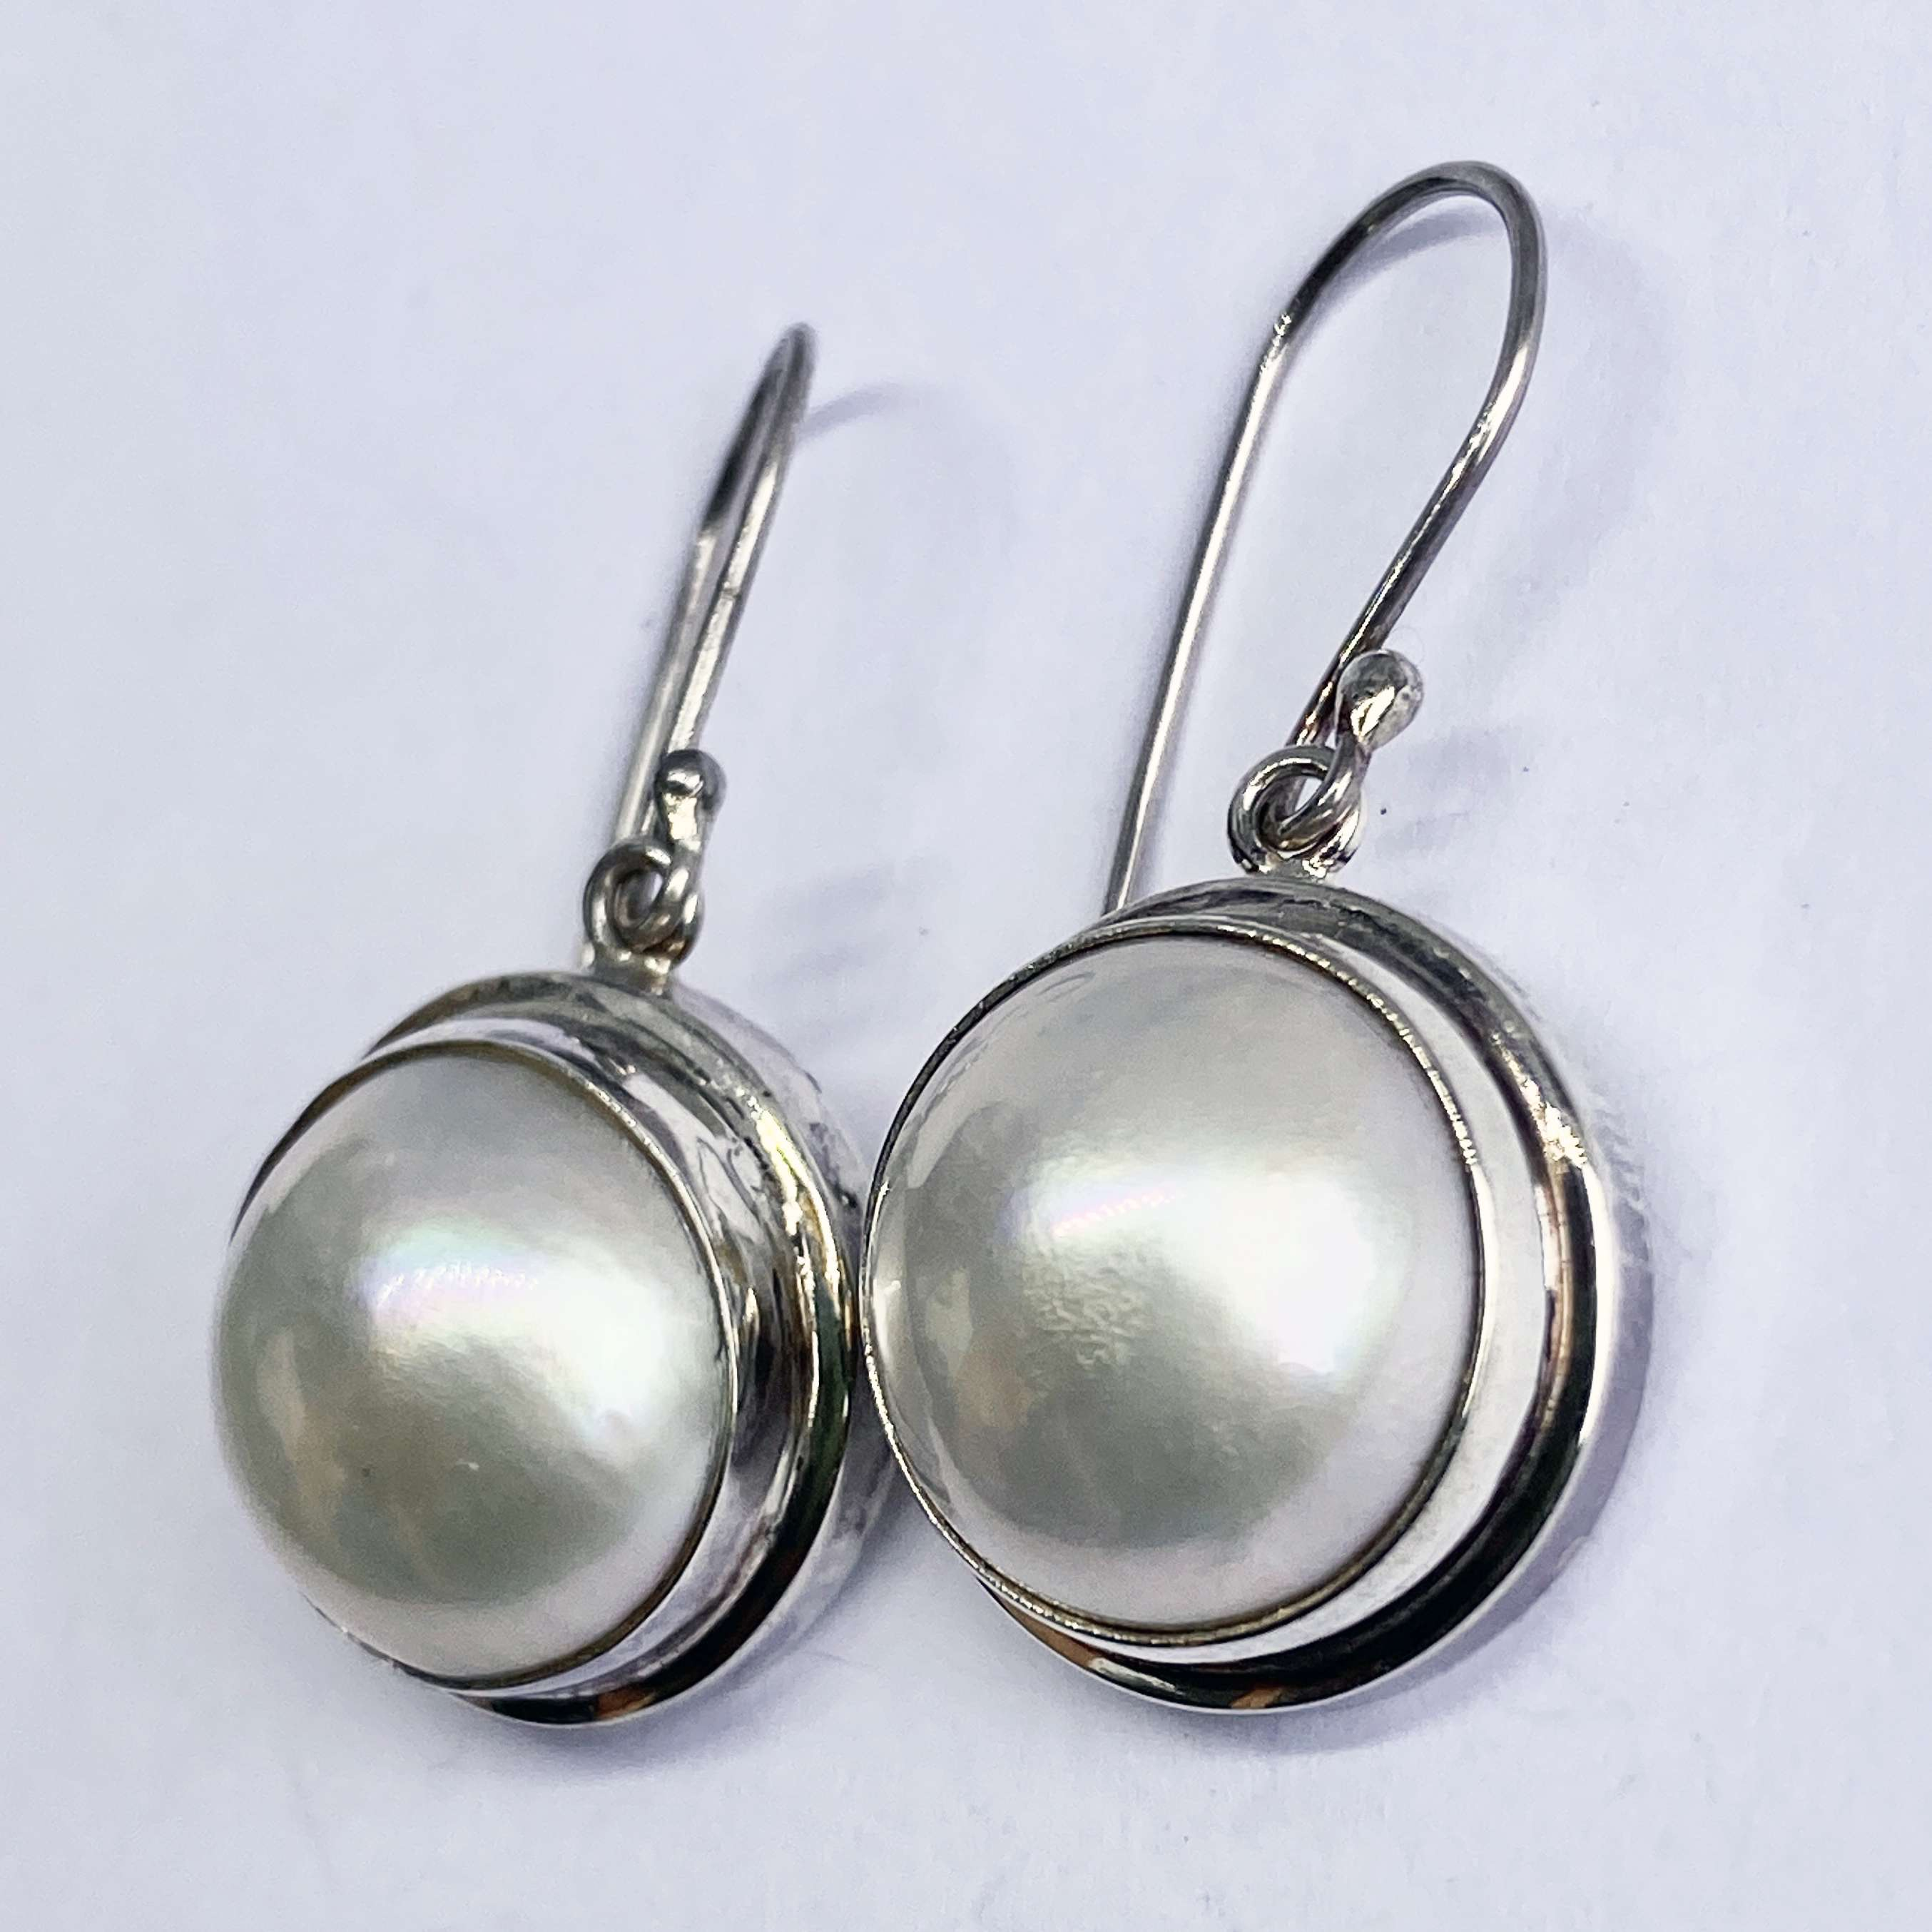 (HANDMADE 925 BALI SILVER EARRINGS WITH MABE PEARL)